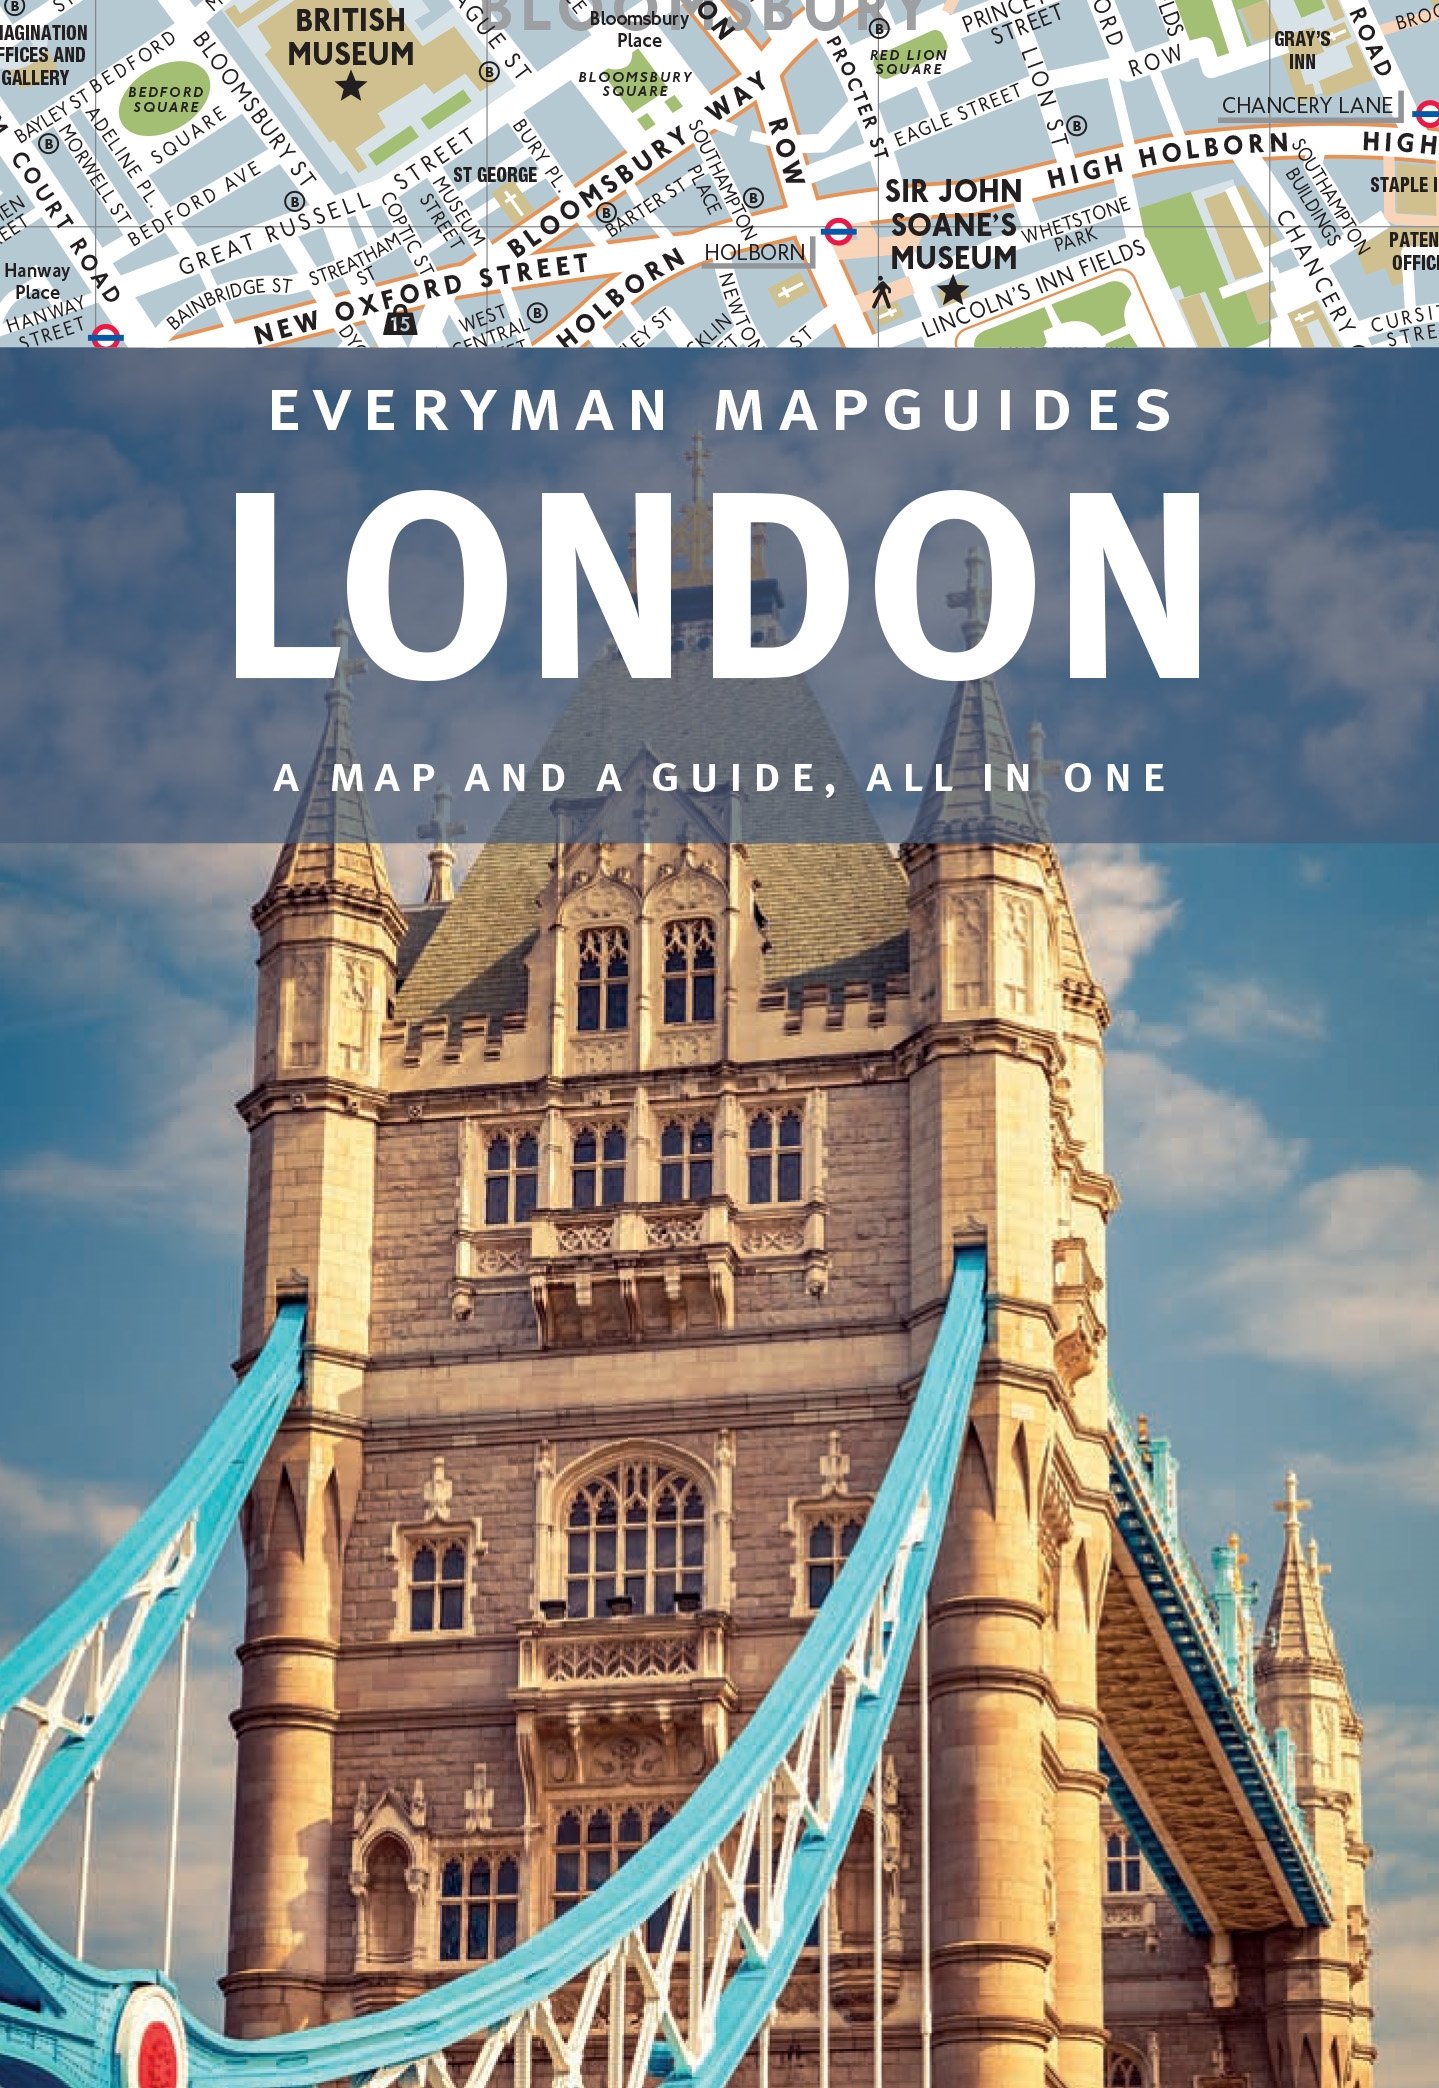 London Map Guide.London Everyman Mapguide Penguin Books Australia